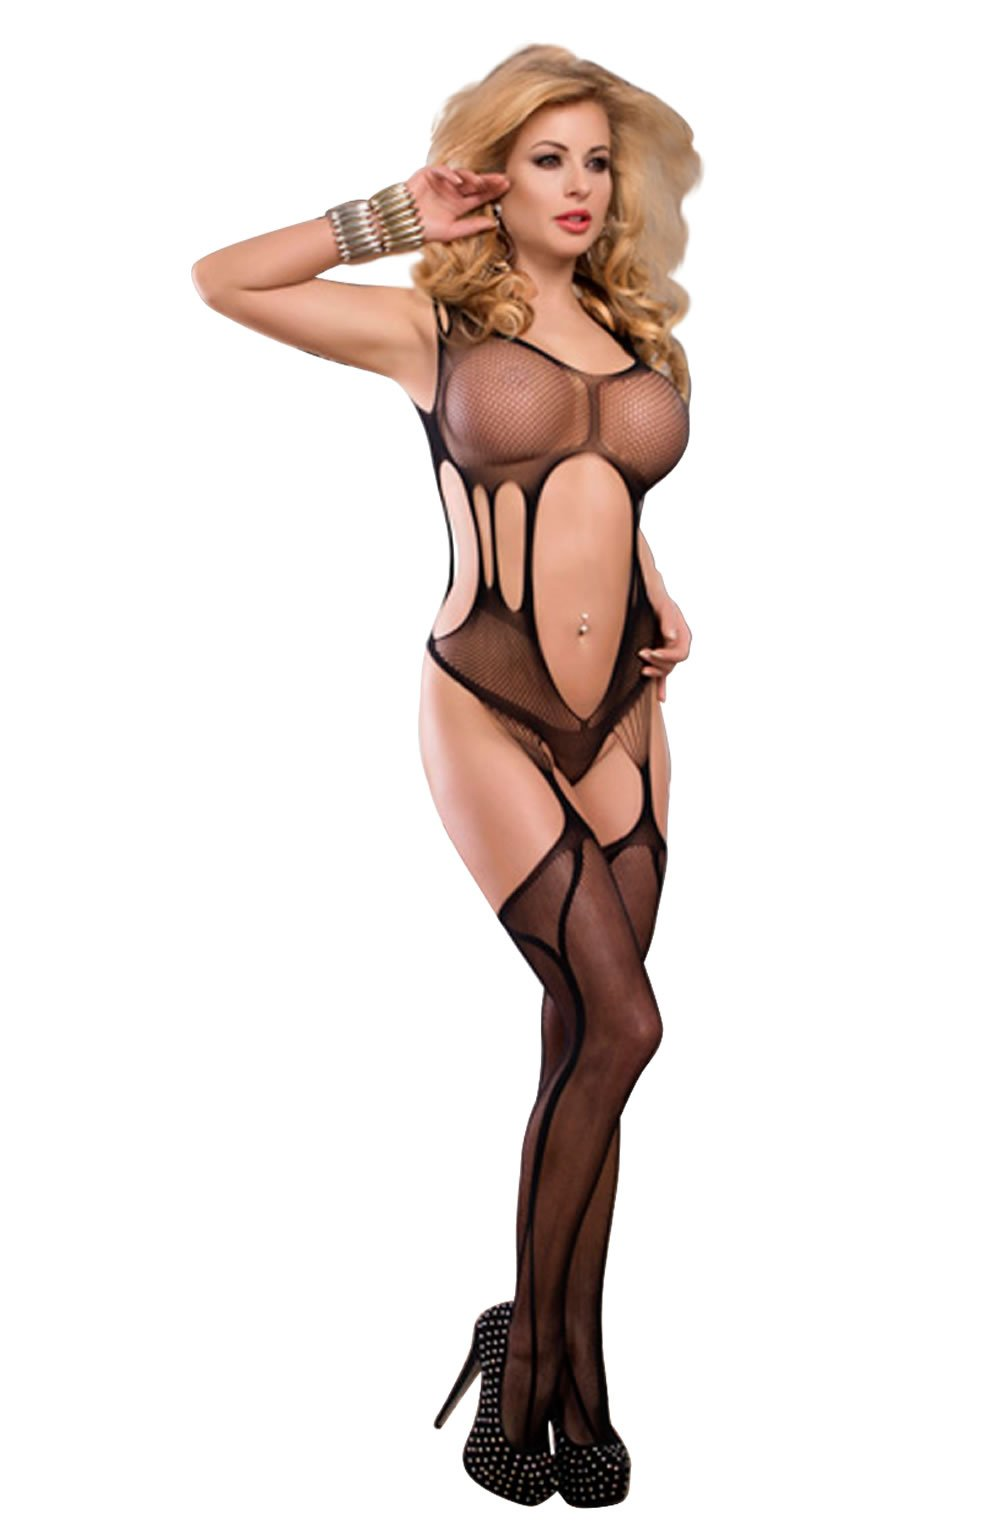 YesX YX402 Bodystocking Black - Black / S/M - Lingerie Best